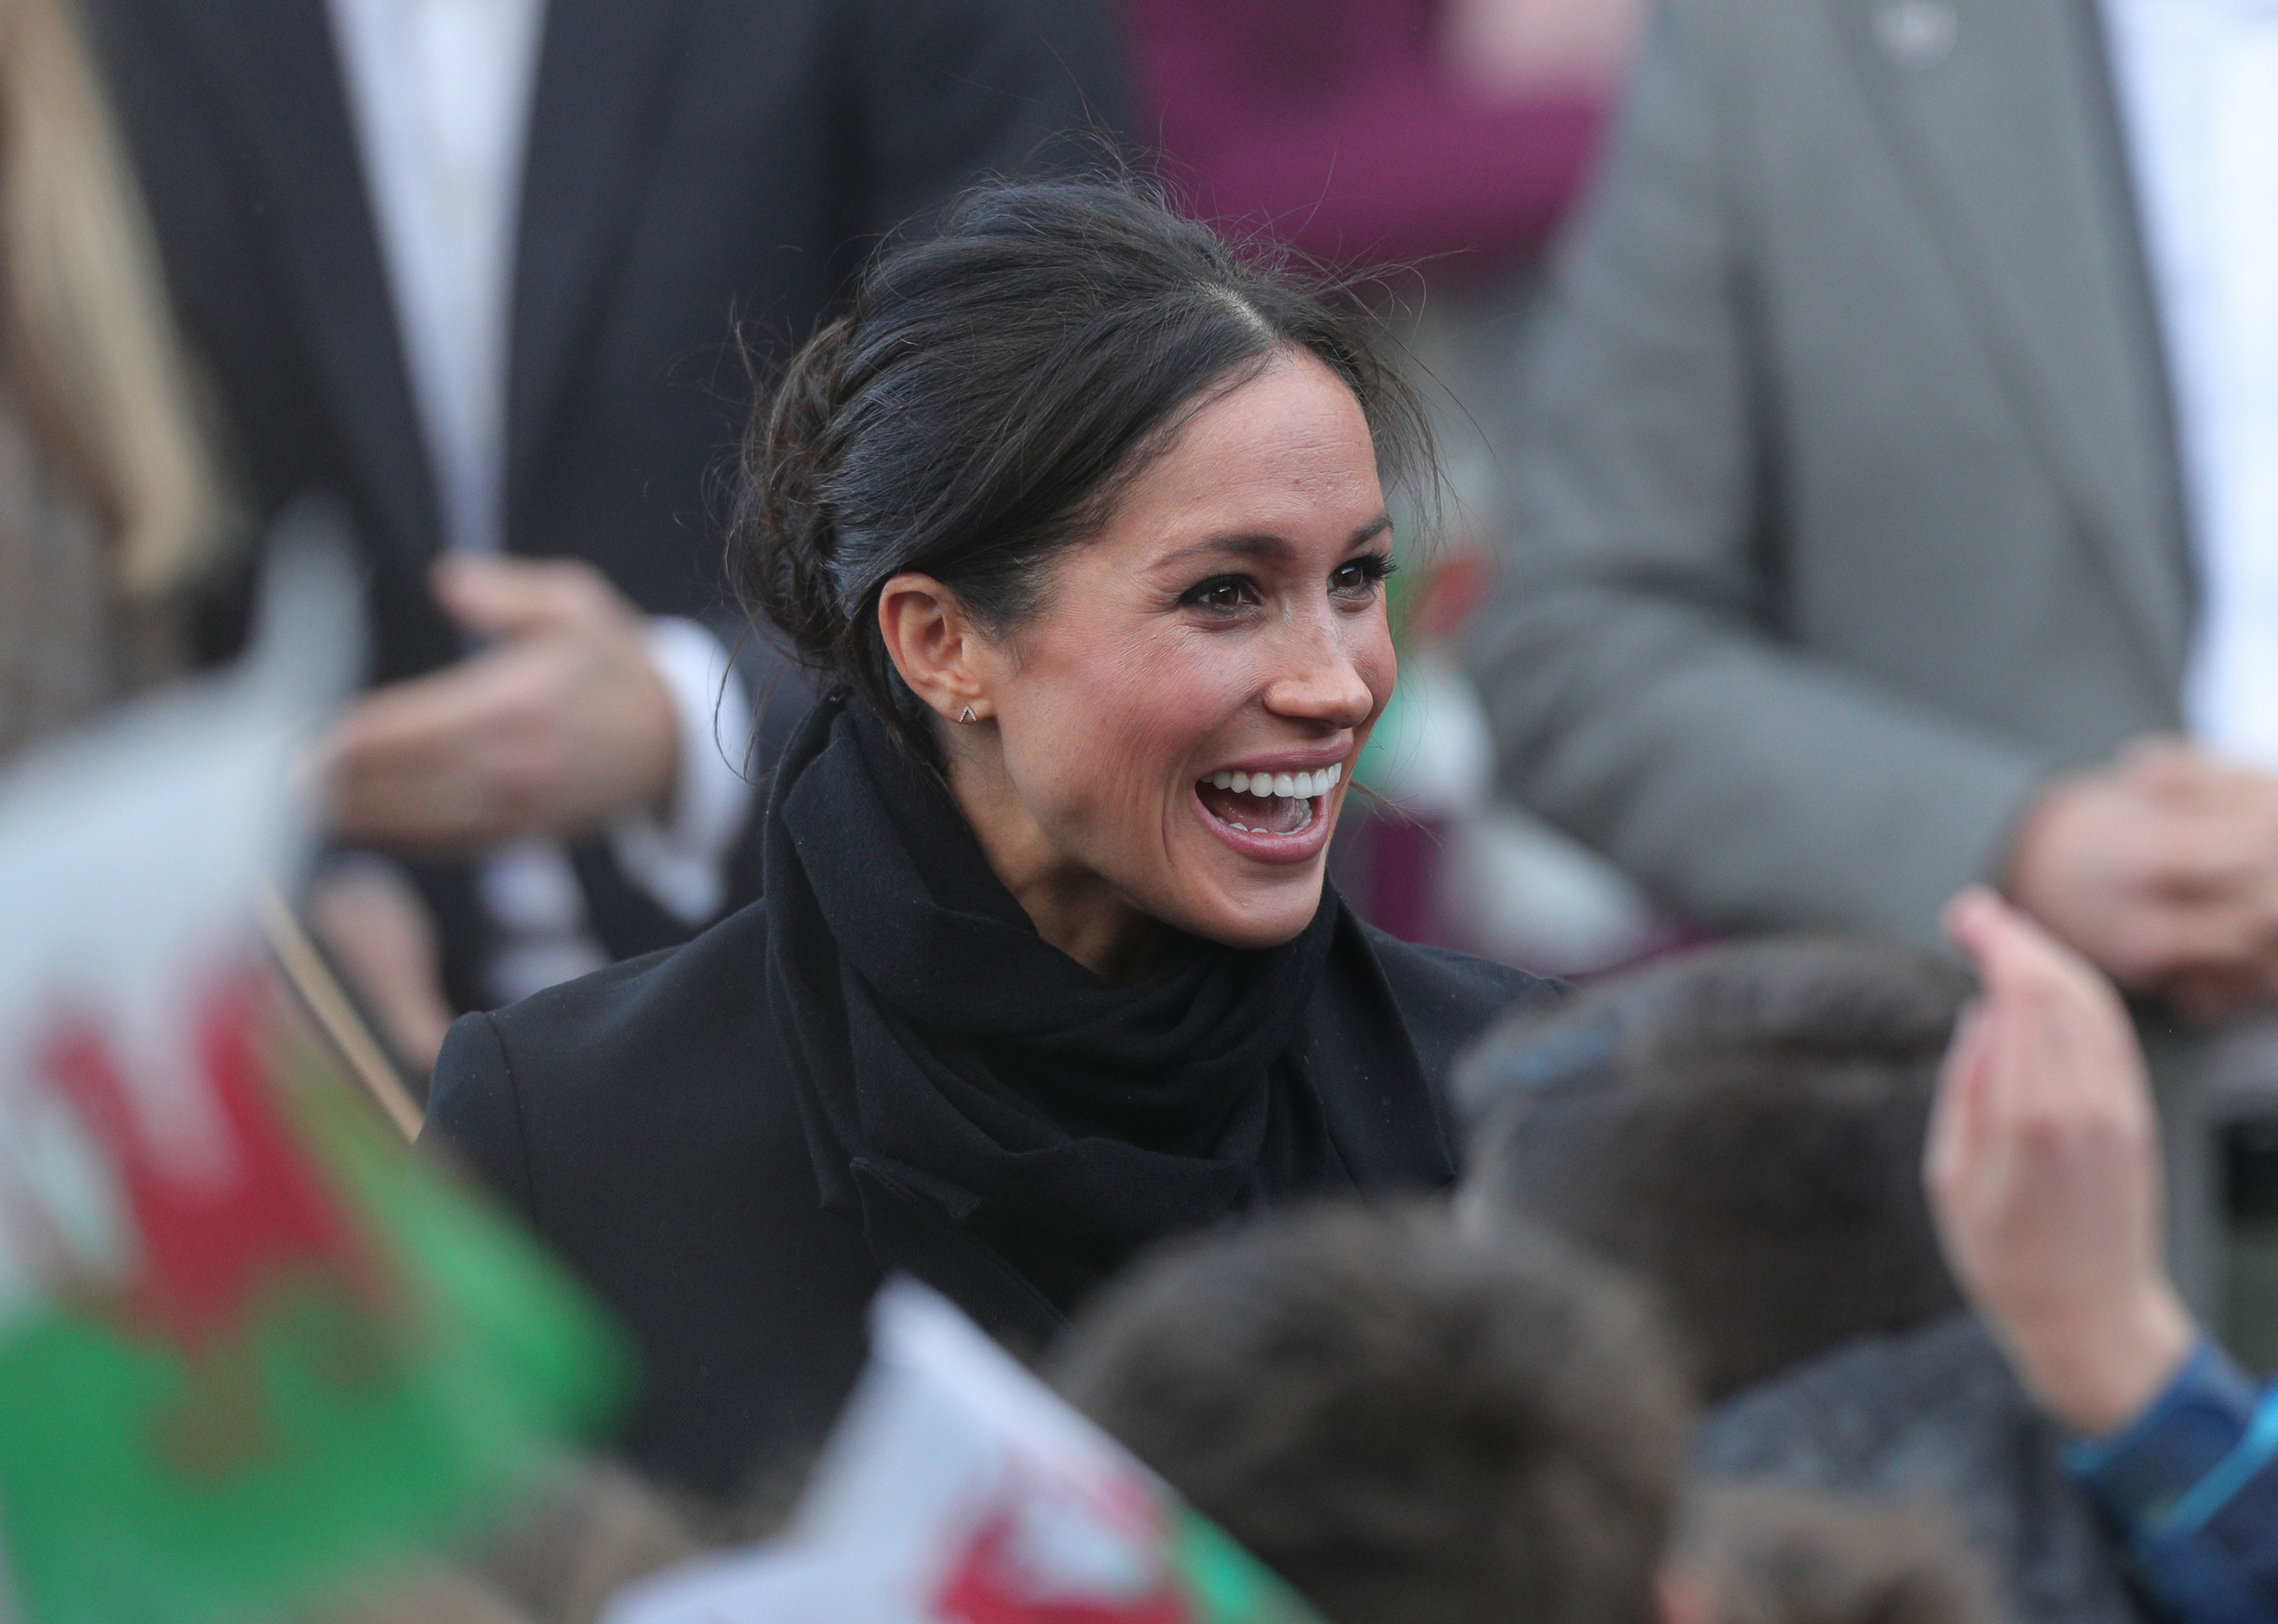 Meghan Markle arrive for a visit at Cardiff Castle with Prince Harry (Aaron Chown/PA)